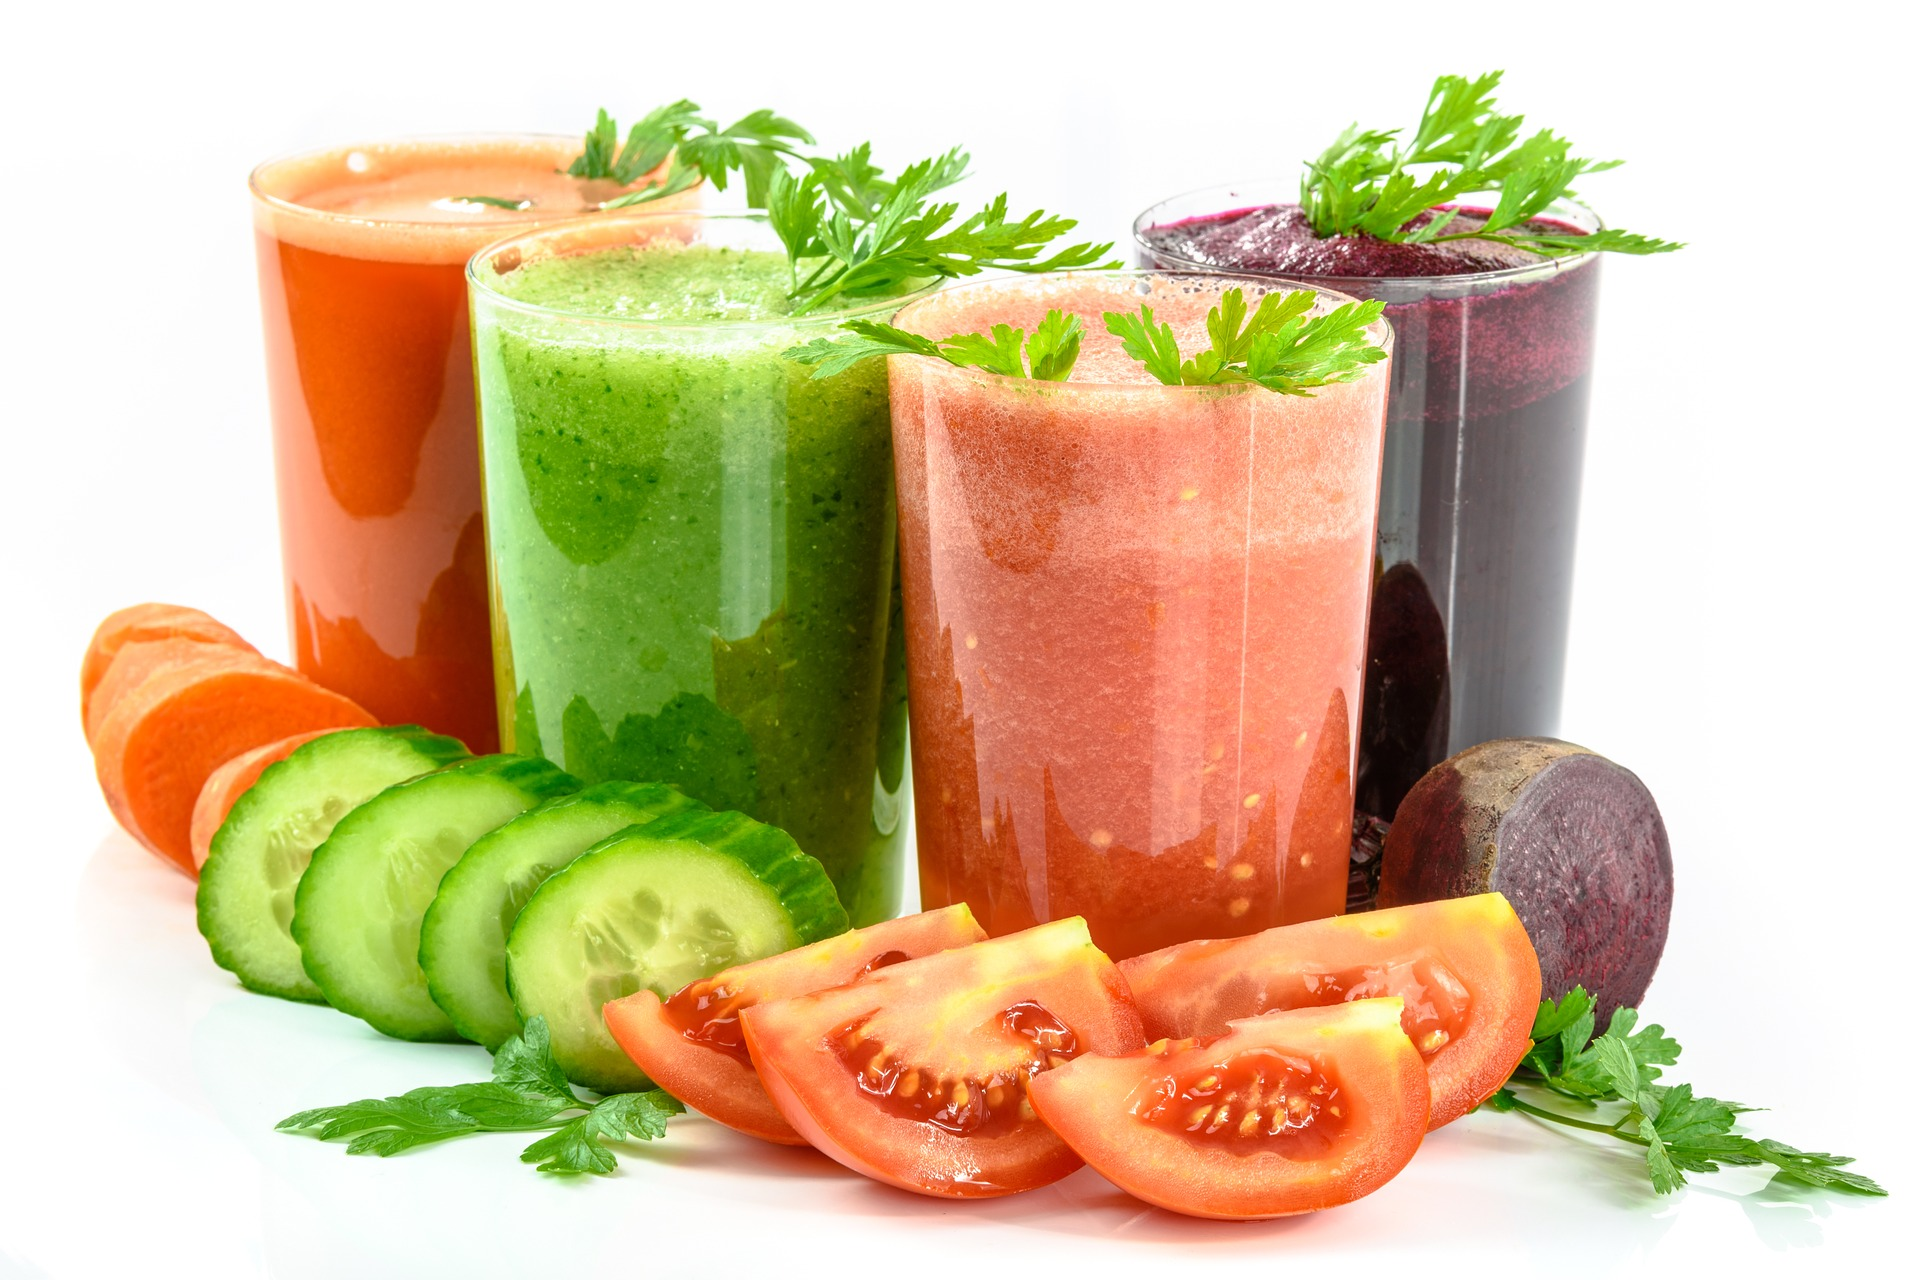 vegetable-juices-1725835_1920.jpg